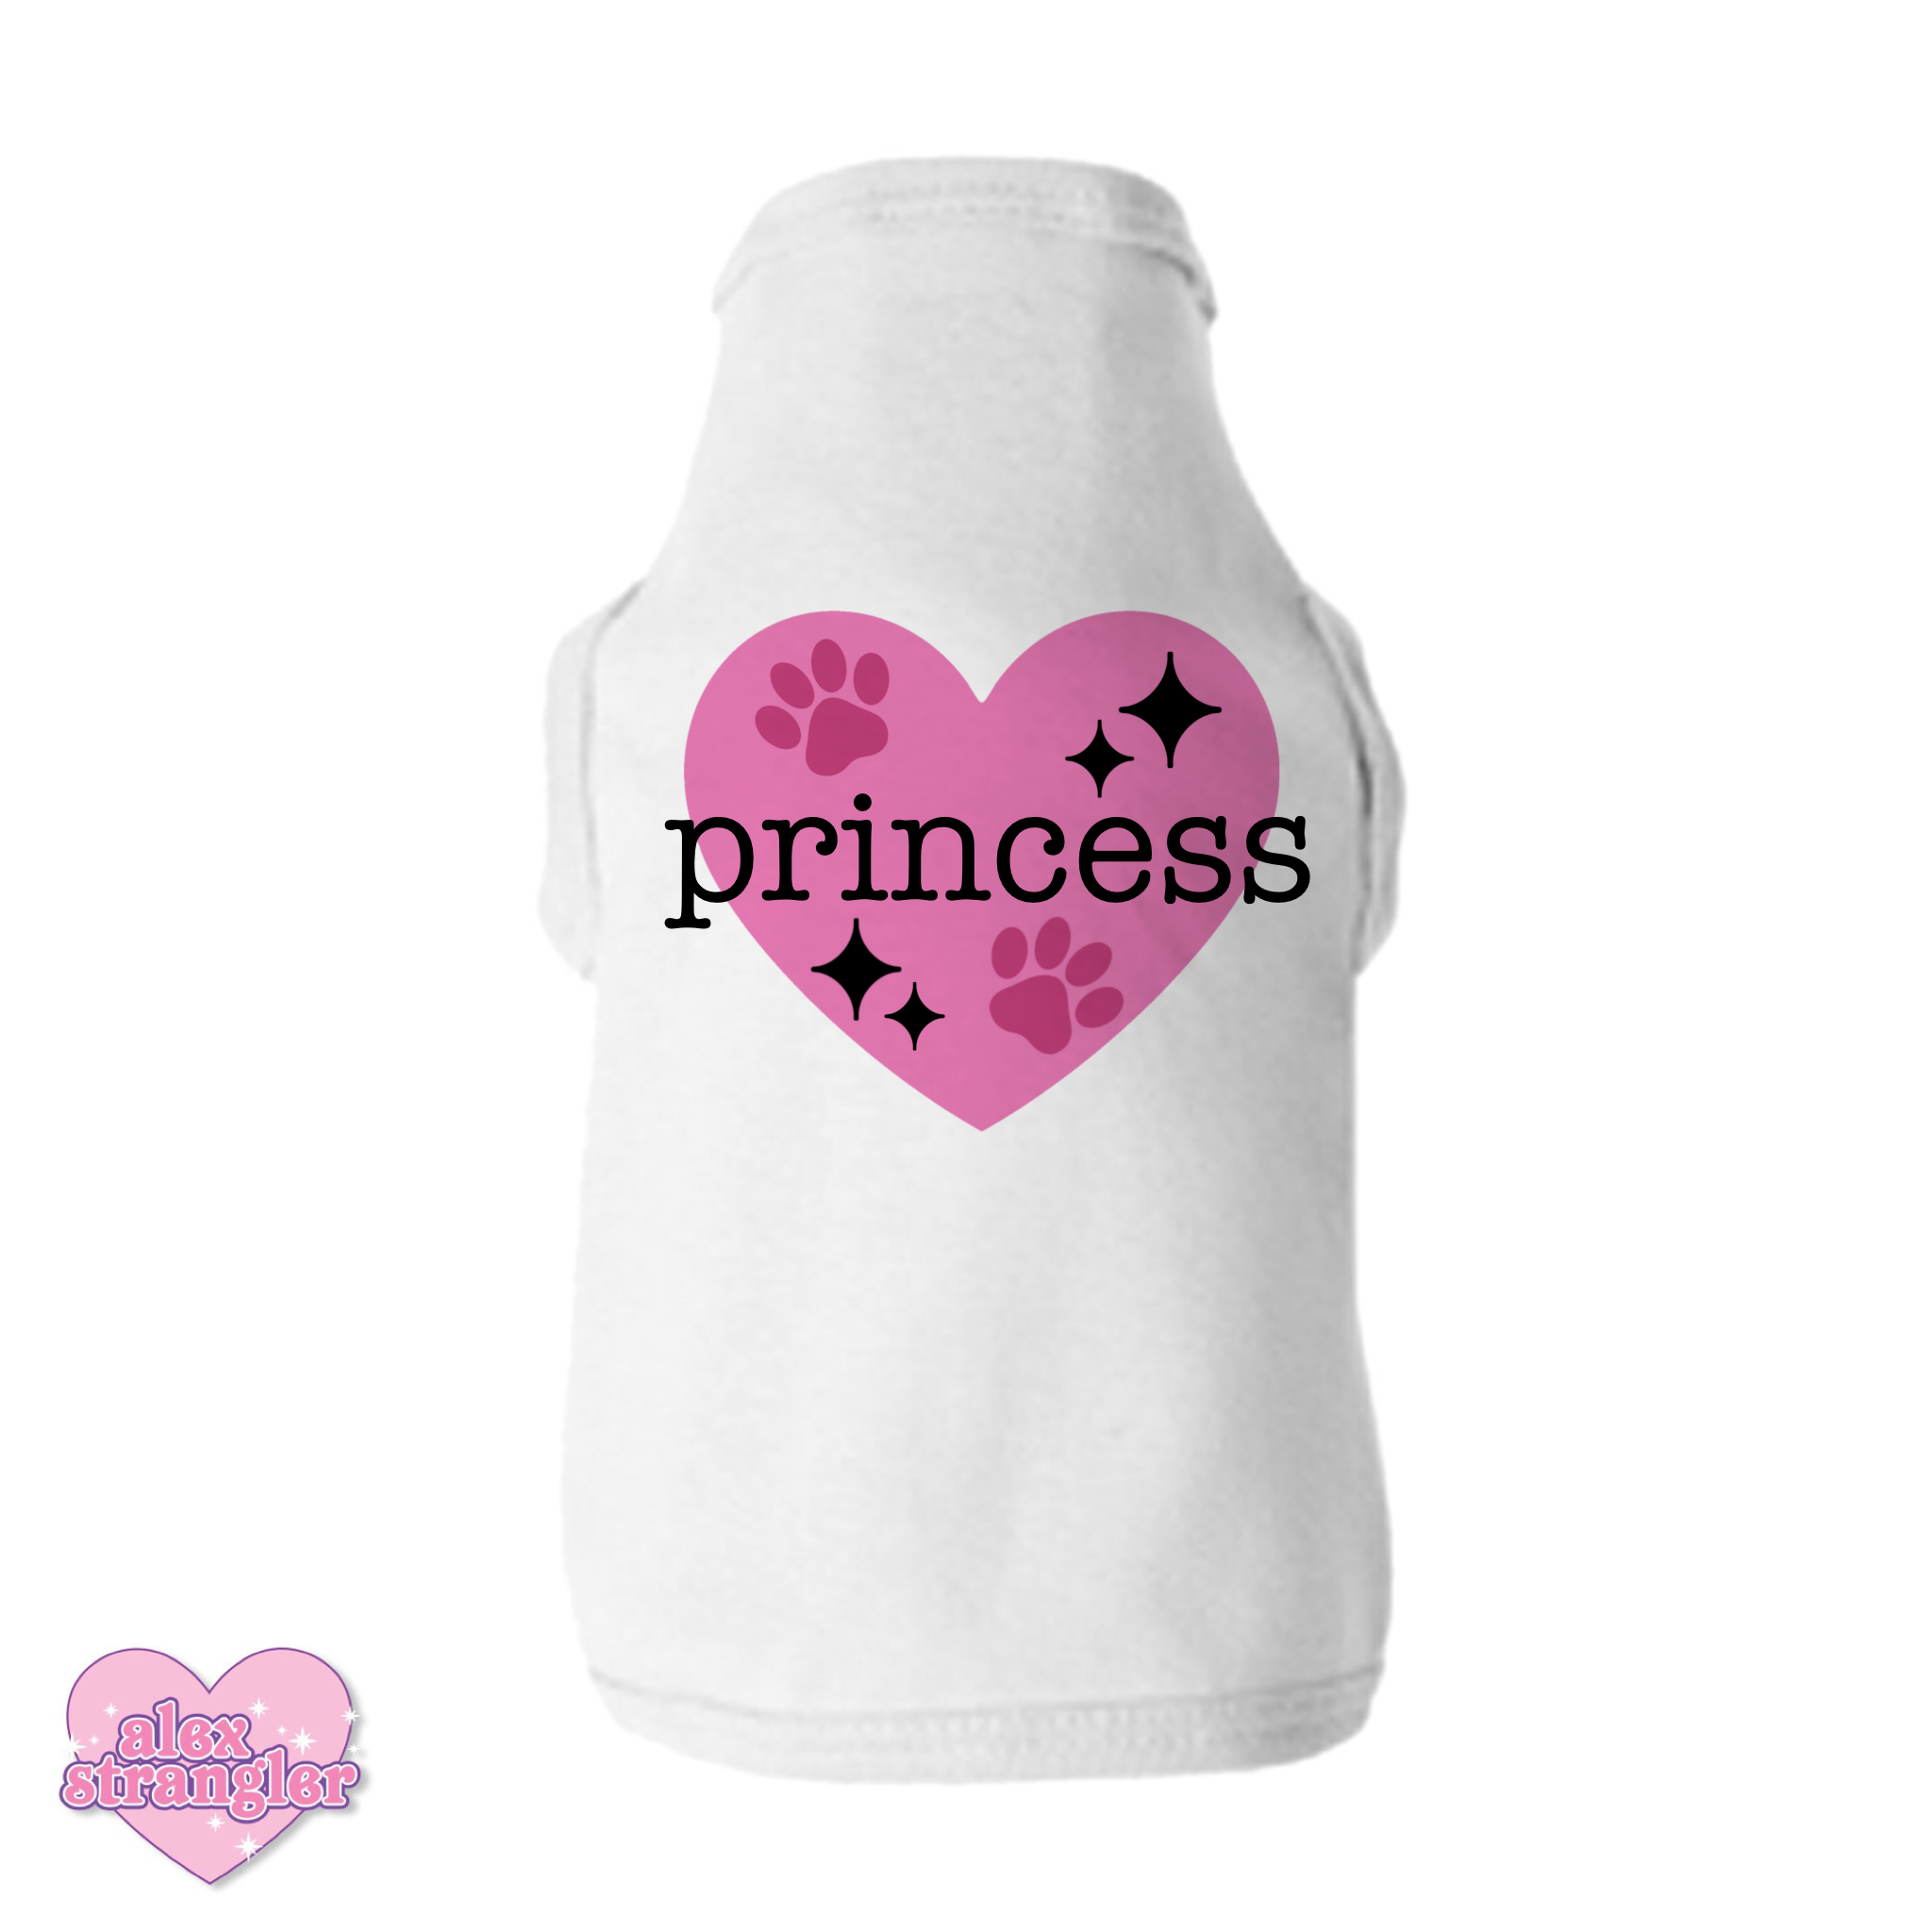 Princess - Pet Clothing